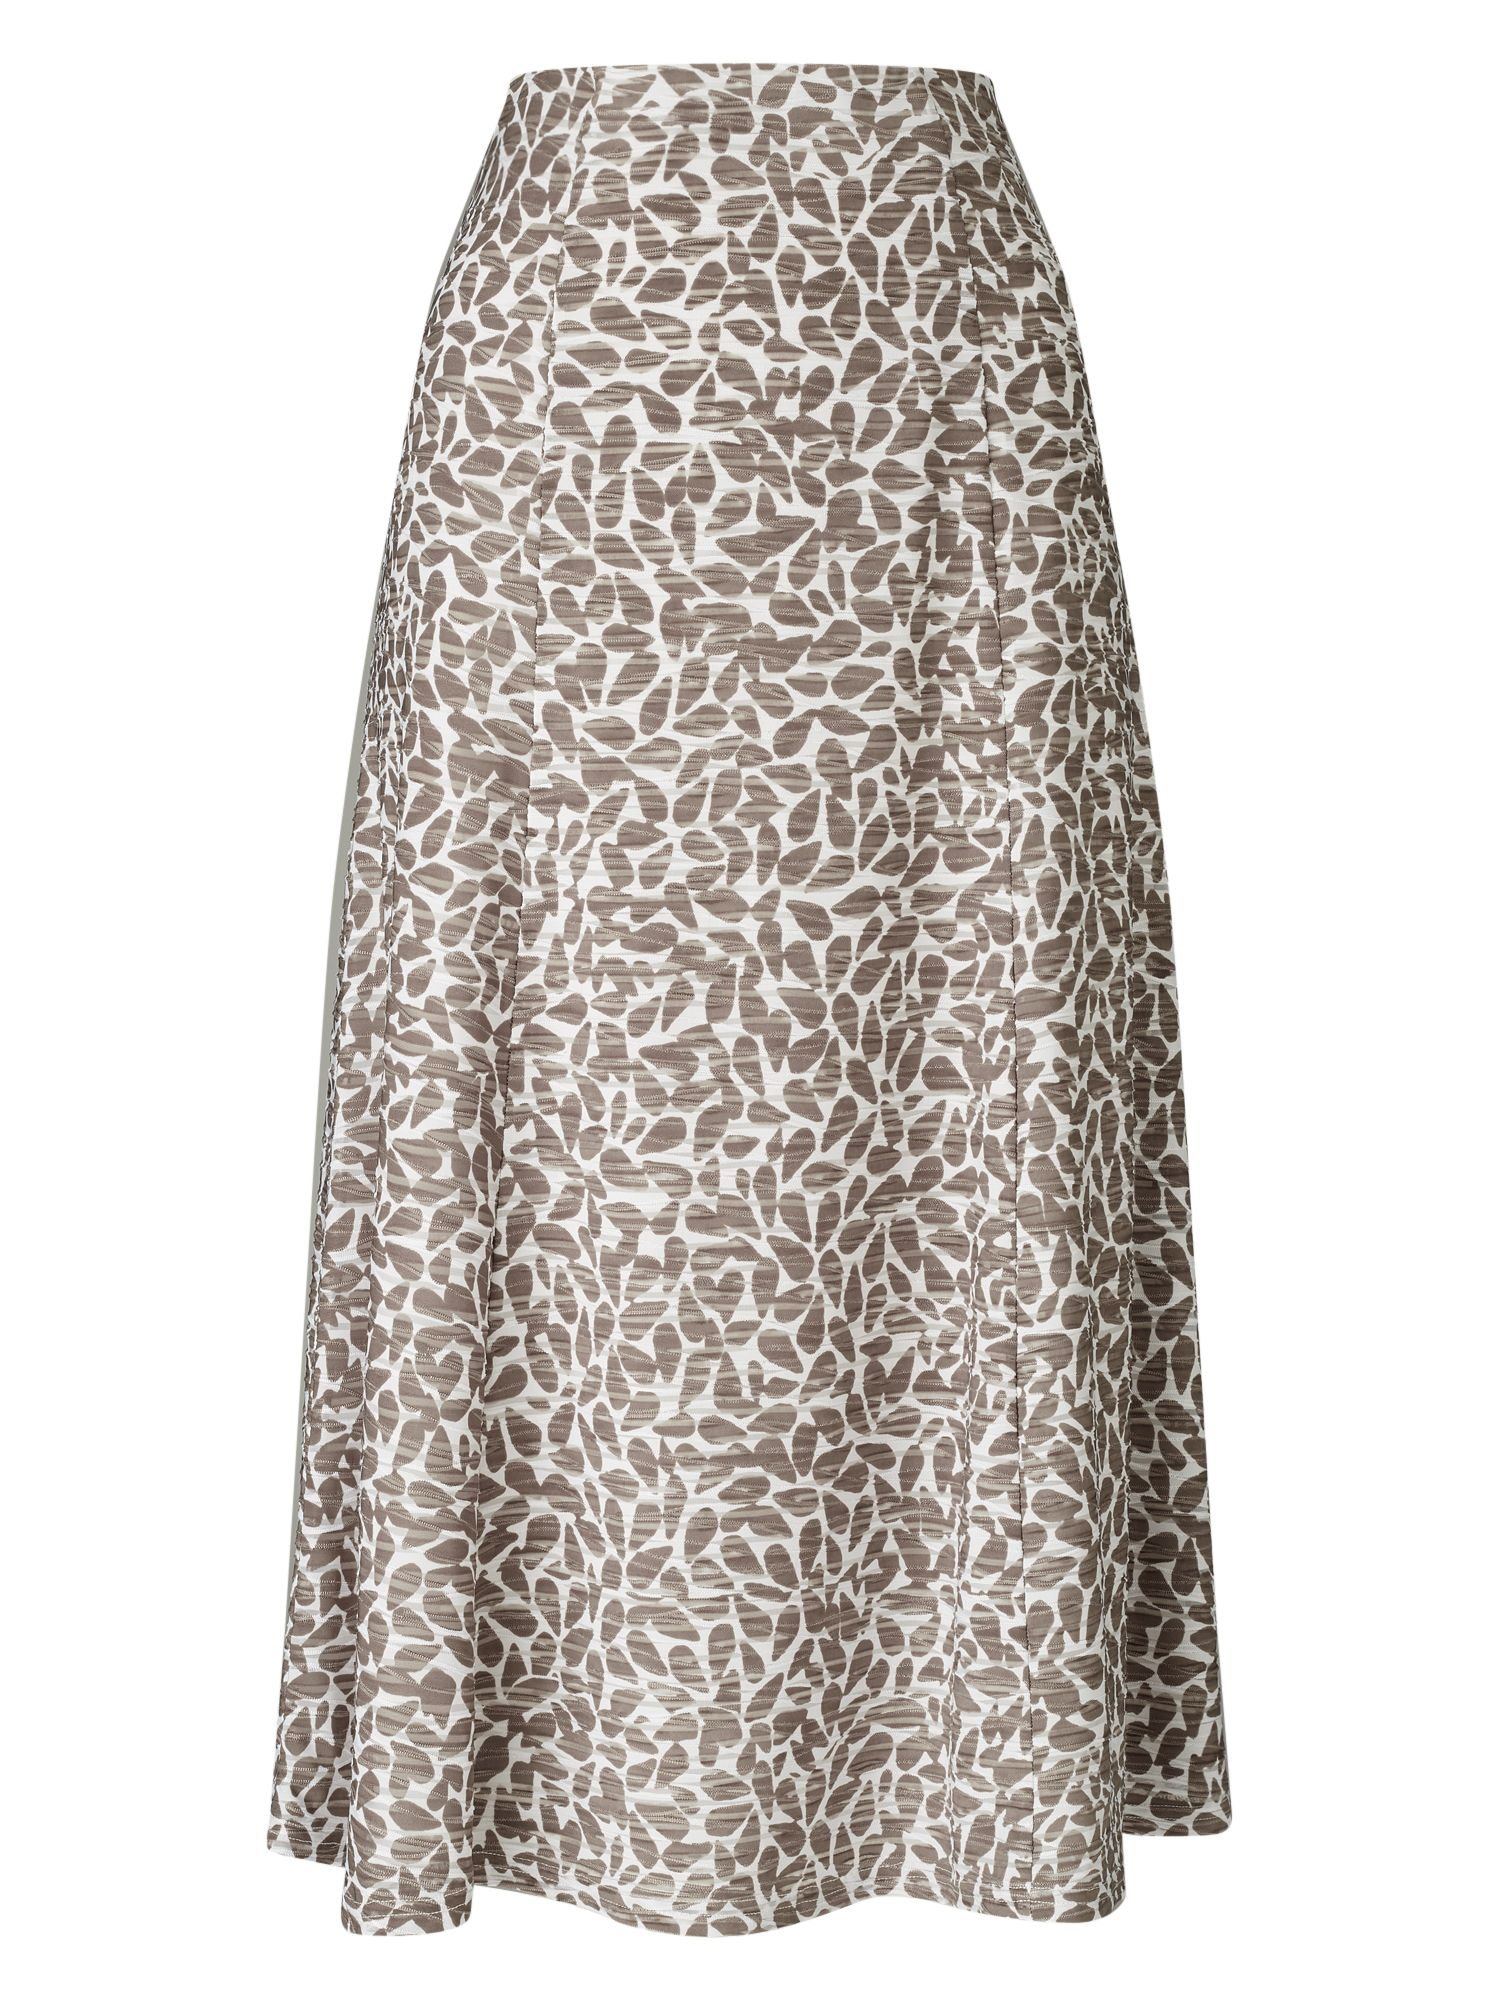 Eastex Pebble Texture Jersey Skirt, Multi-Coloured